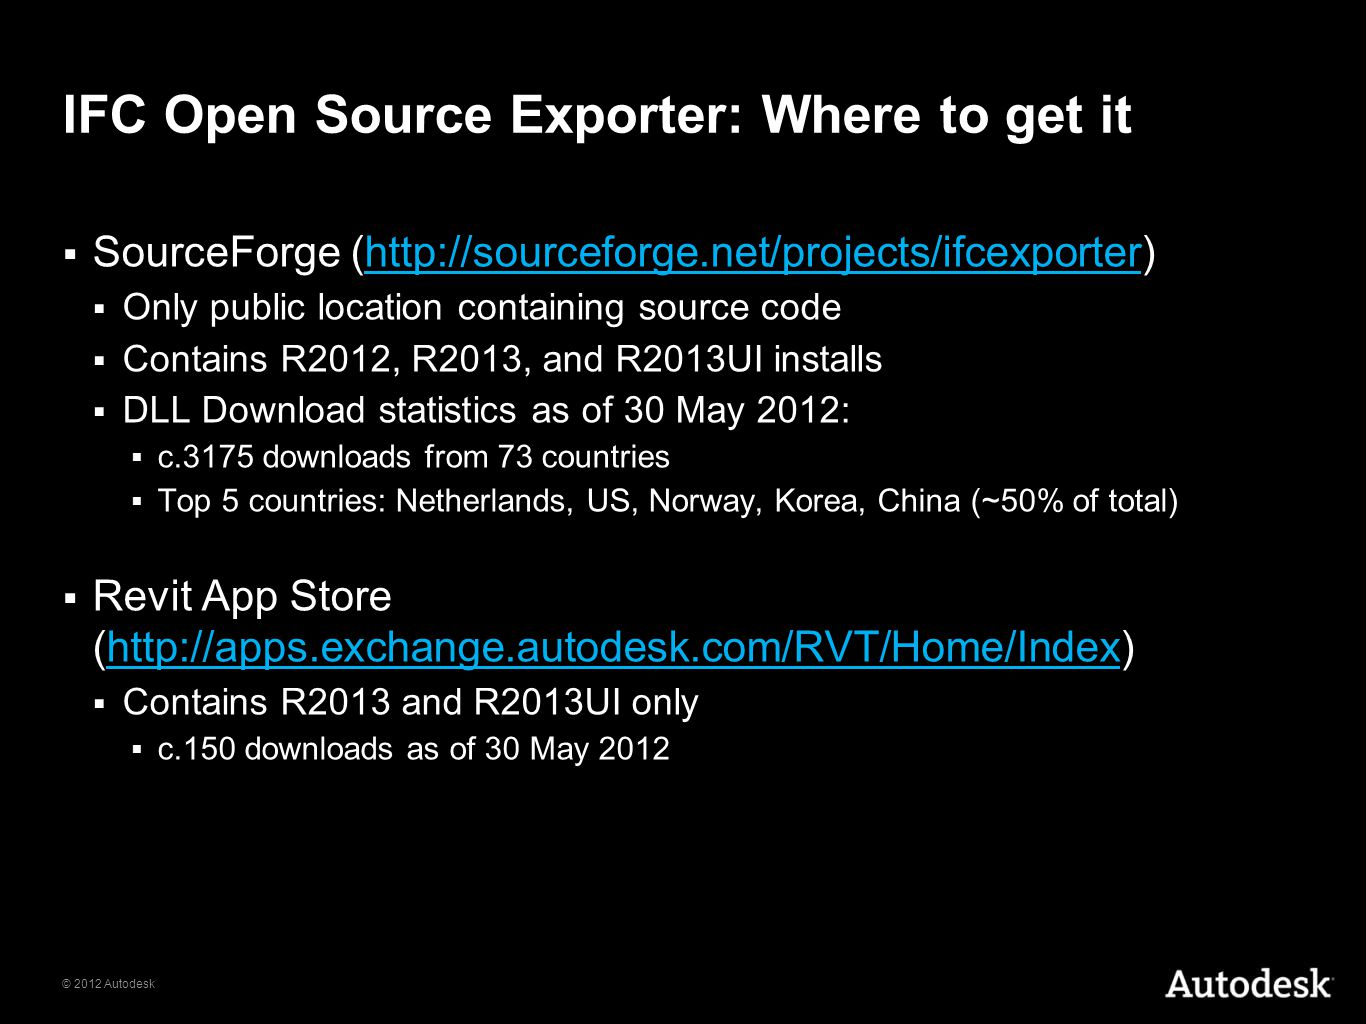 IFC Open Source Exporter: Where to get it